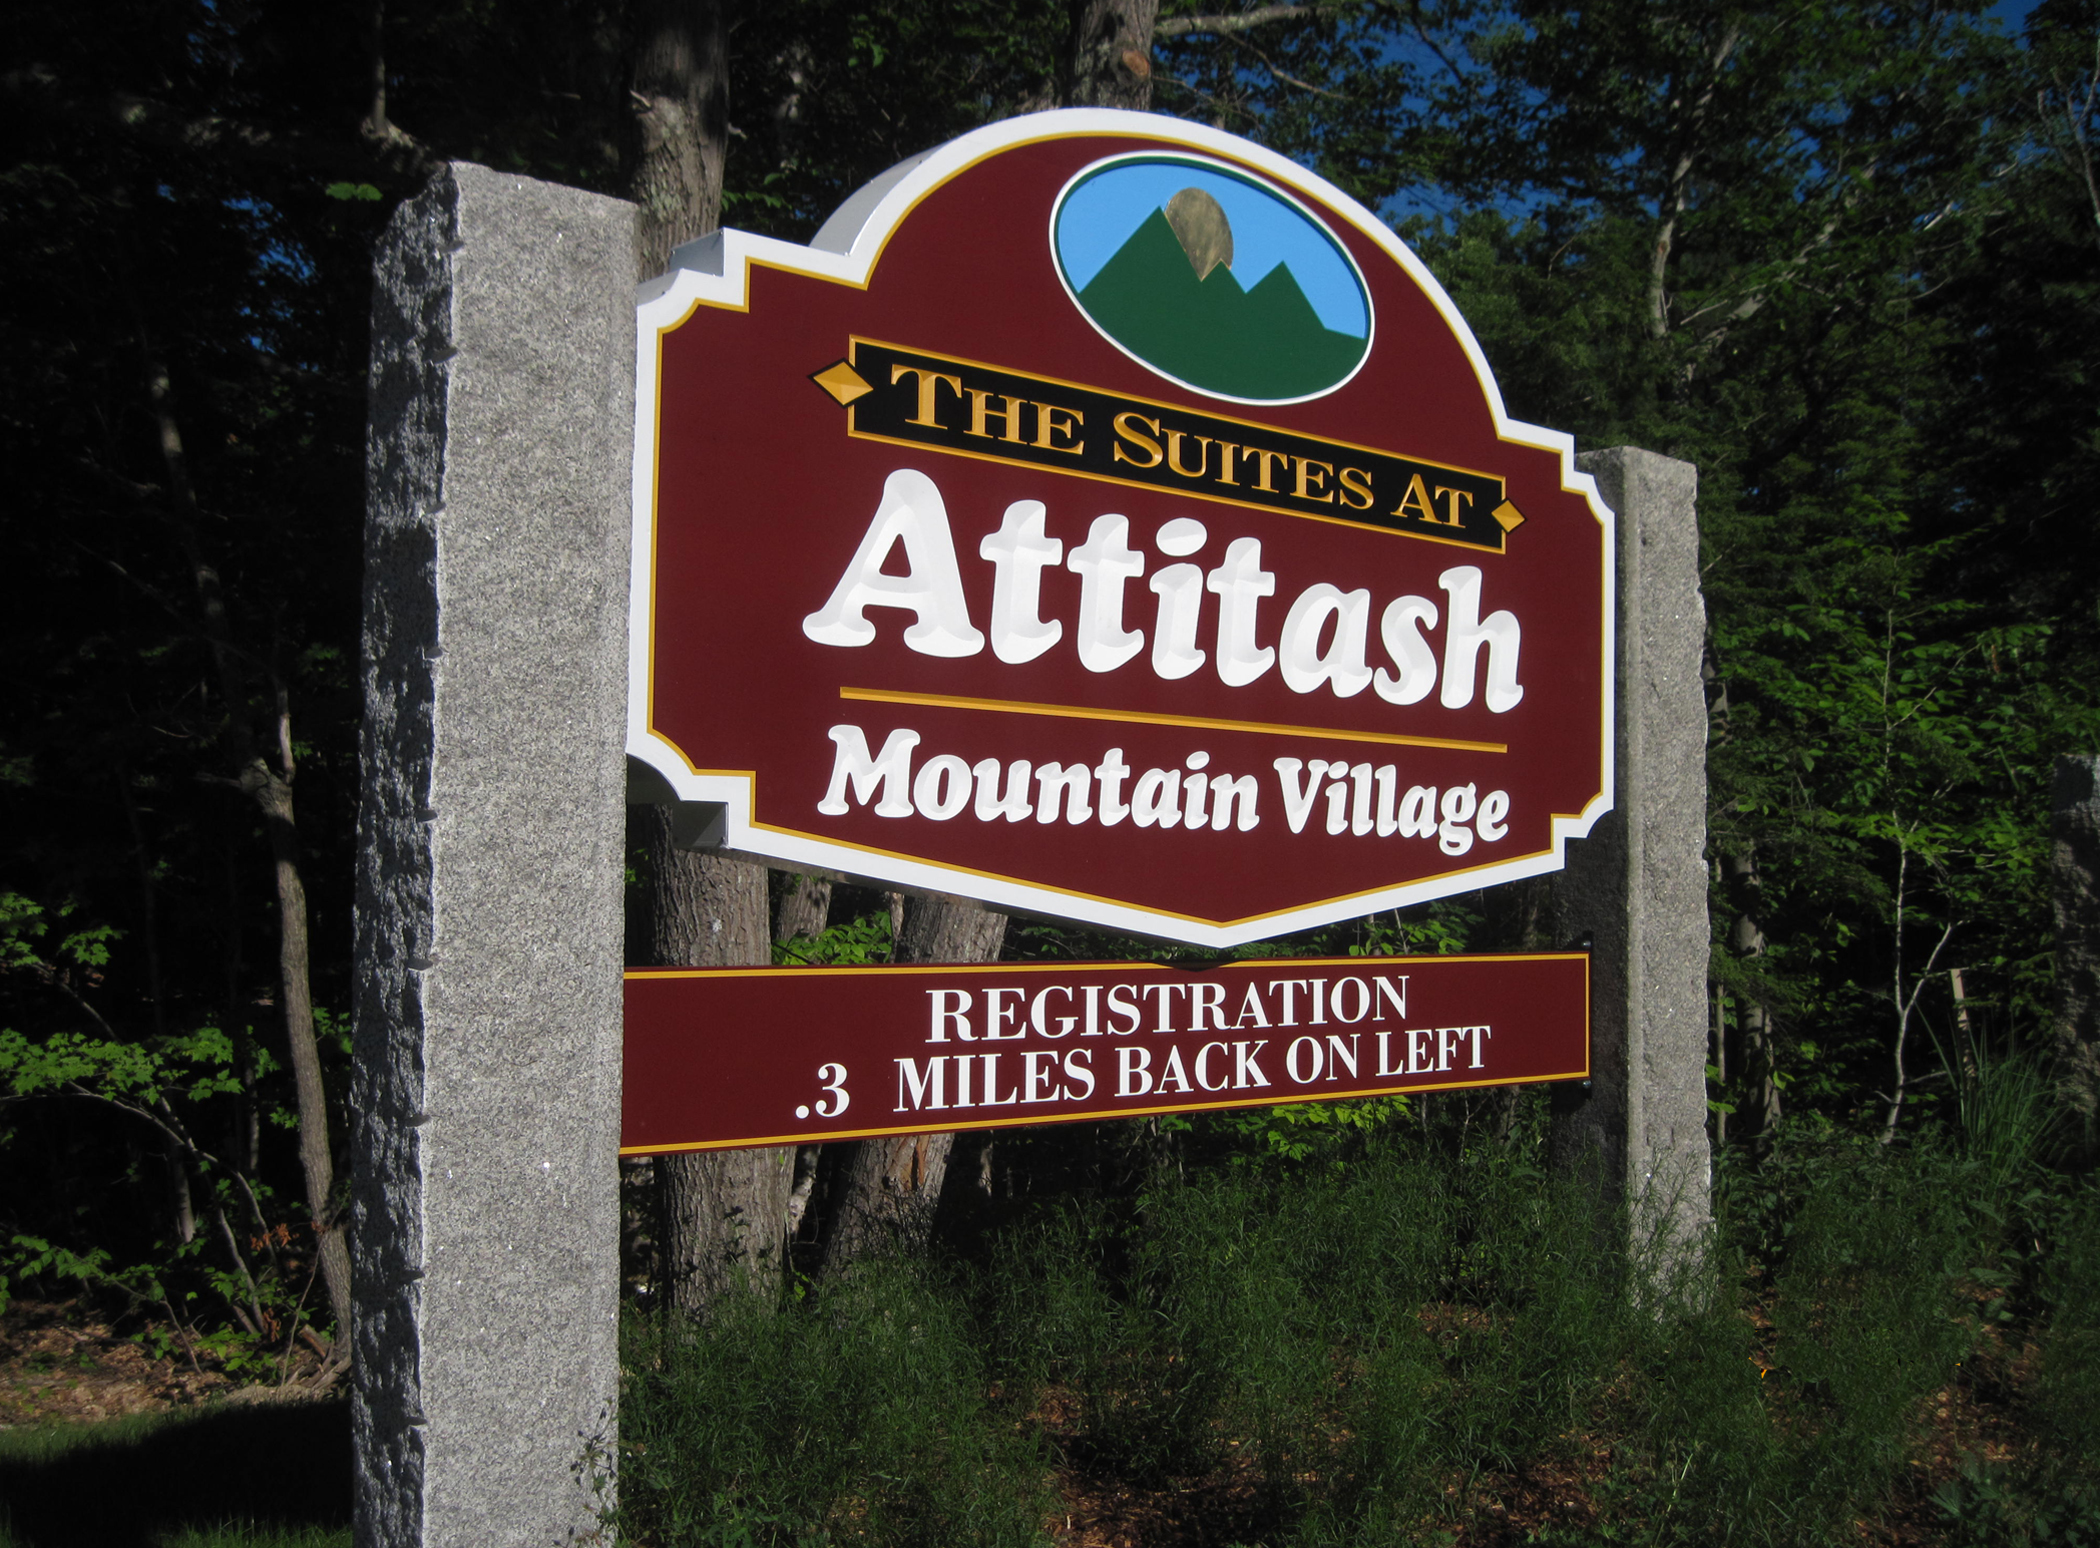 Attitash+Mt+Village.jpg